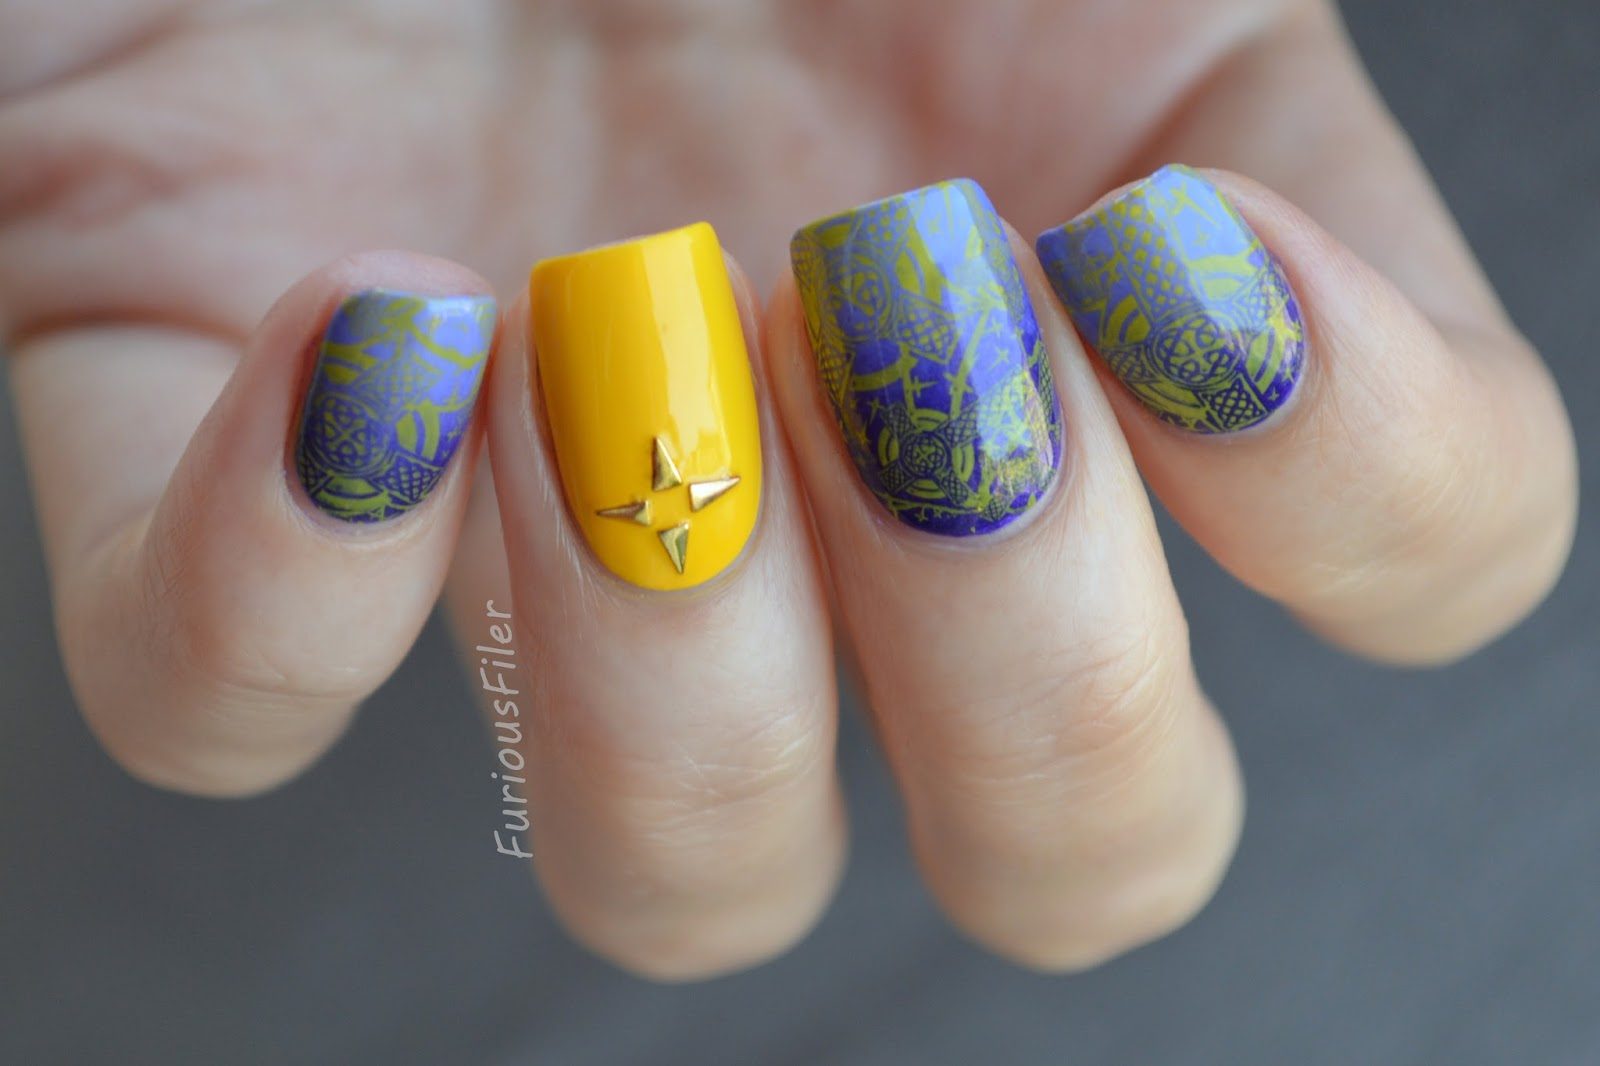 31 day challenge inspired by supernatural moyou nails review 31dc2015 supernatural halloween studded nail art gradient prinsesfo Image collections